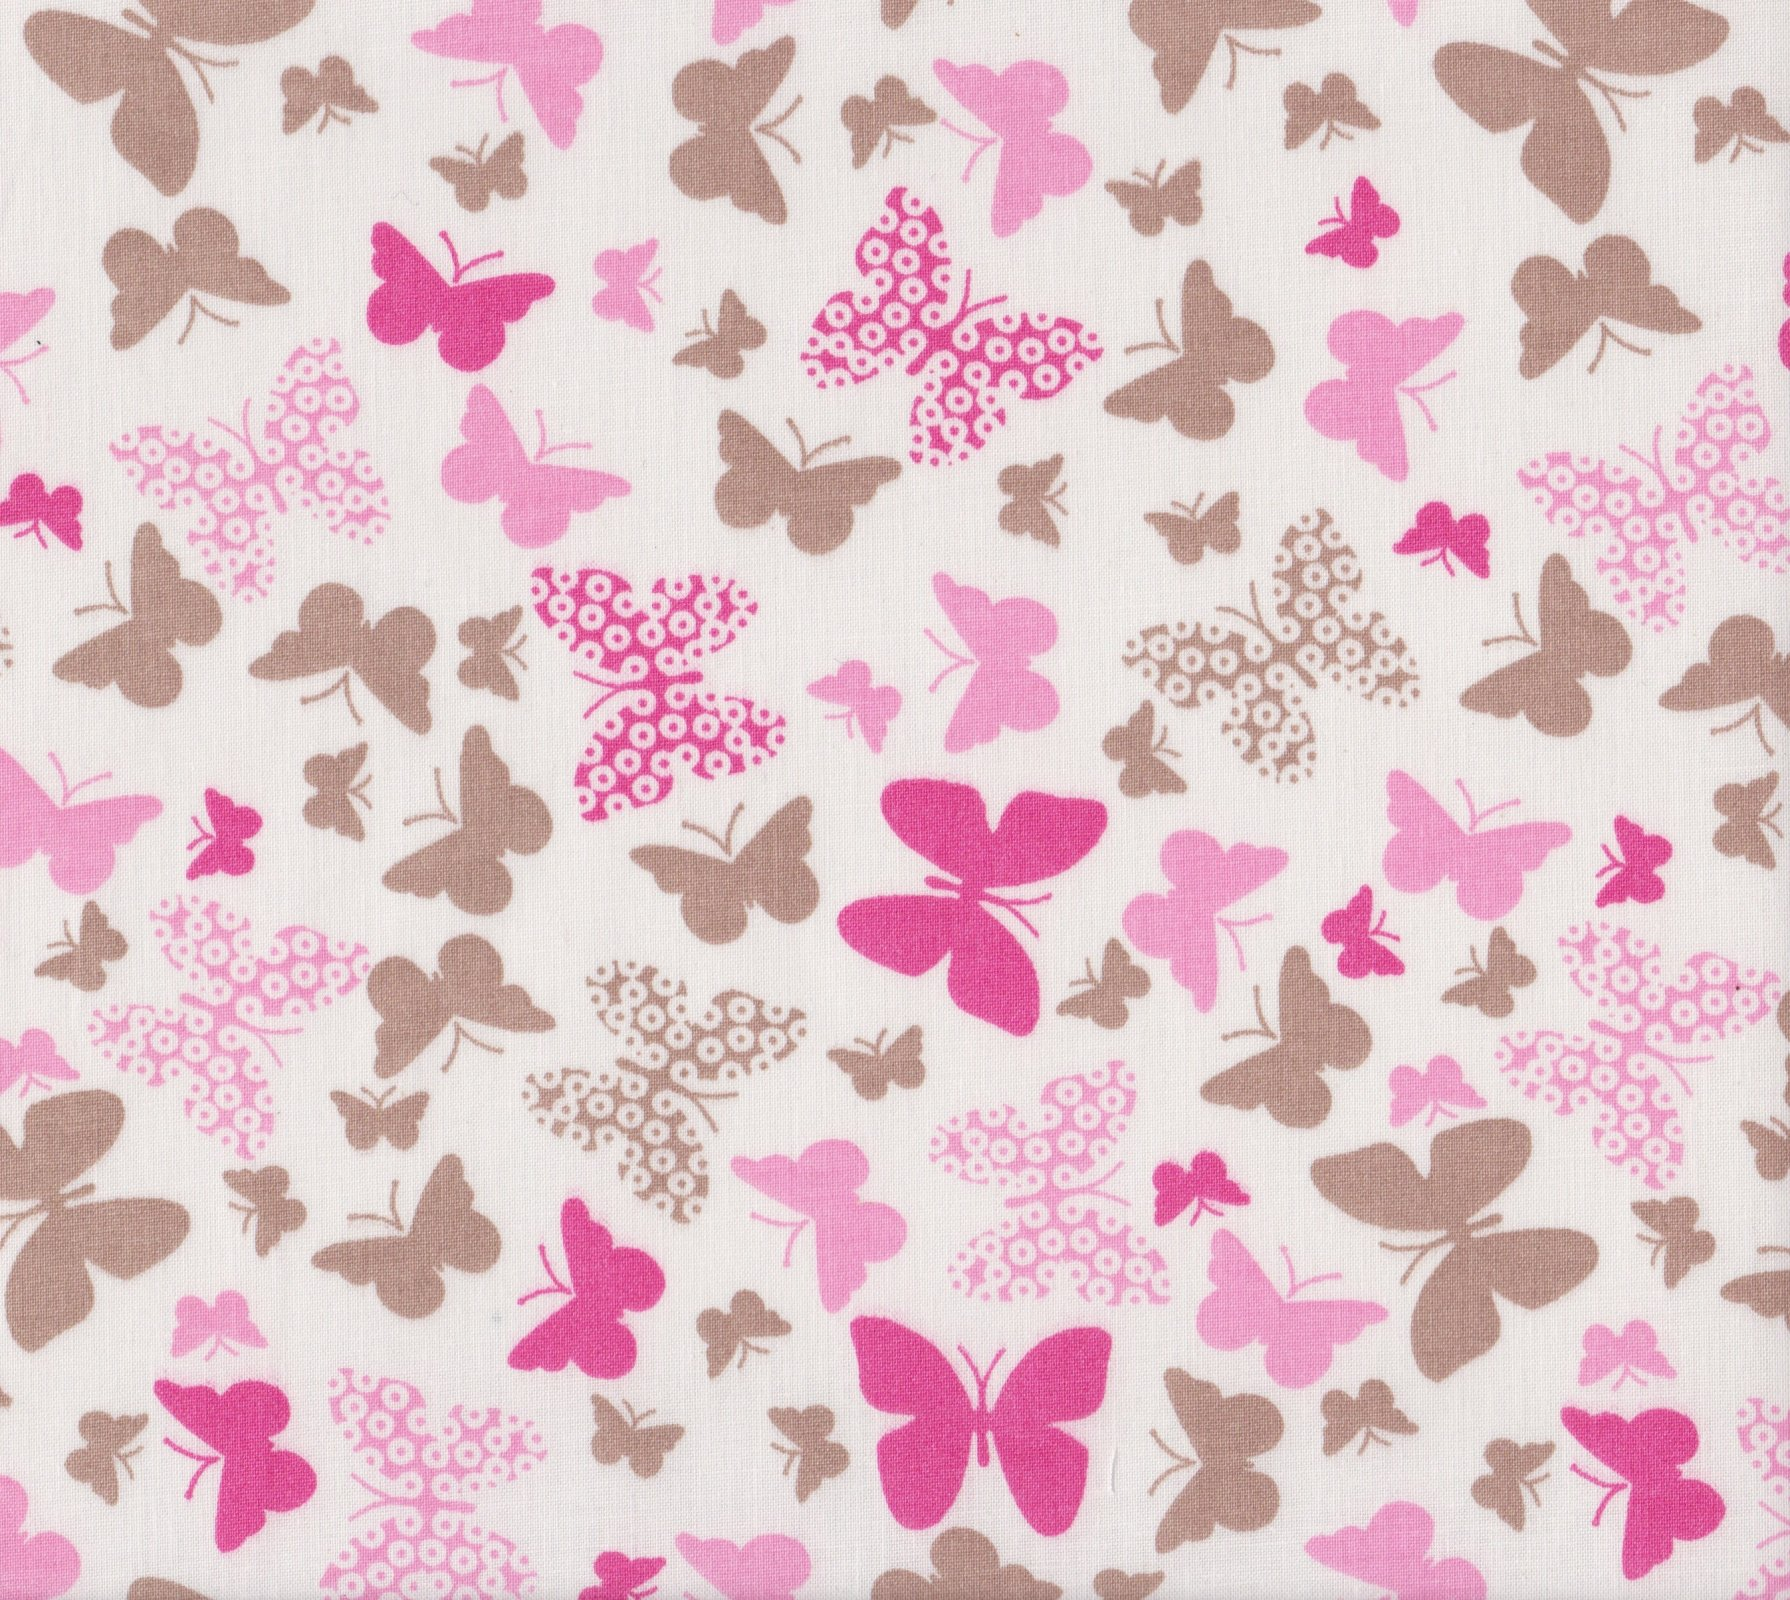 PROMO* FT-Novelty Prints - Pink & Taupe Butterflies